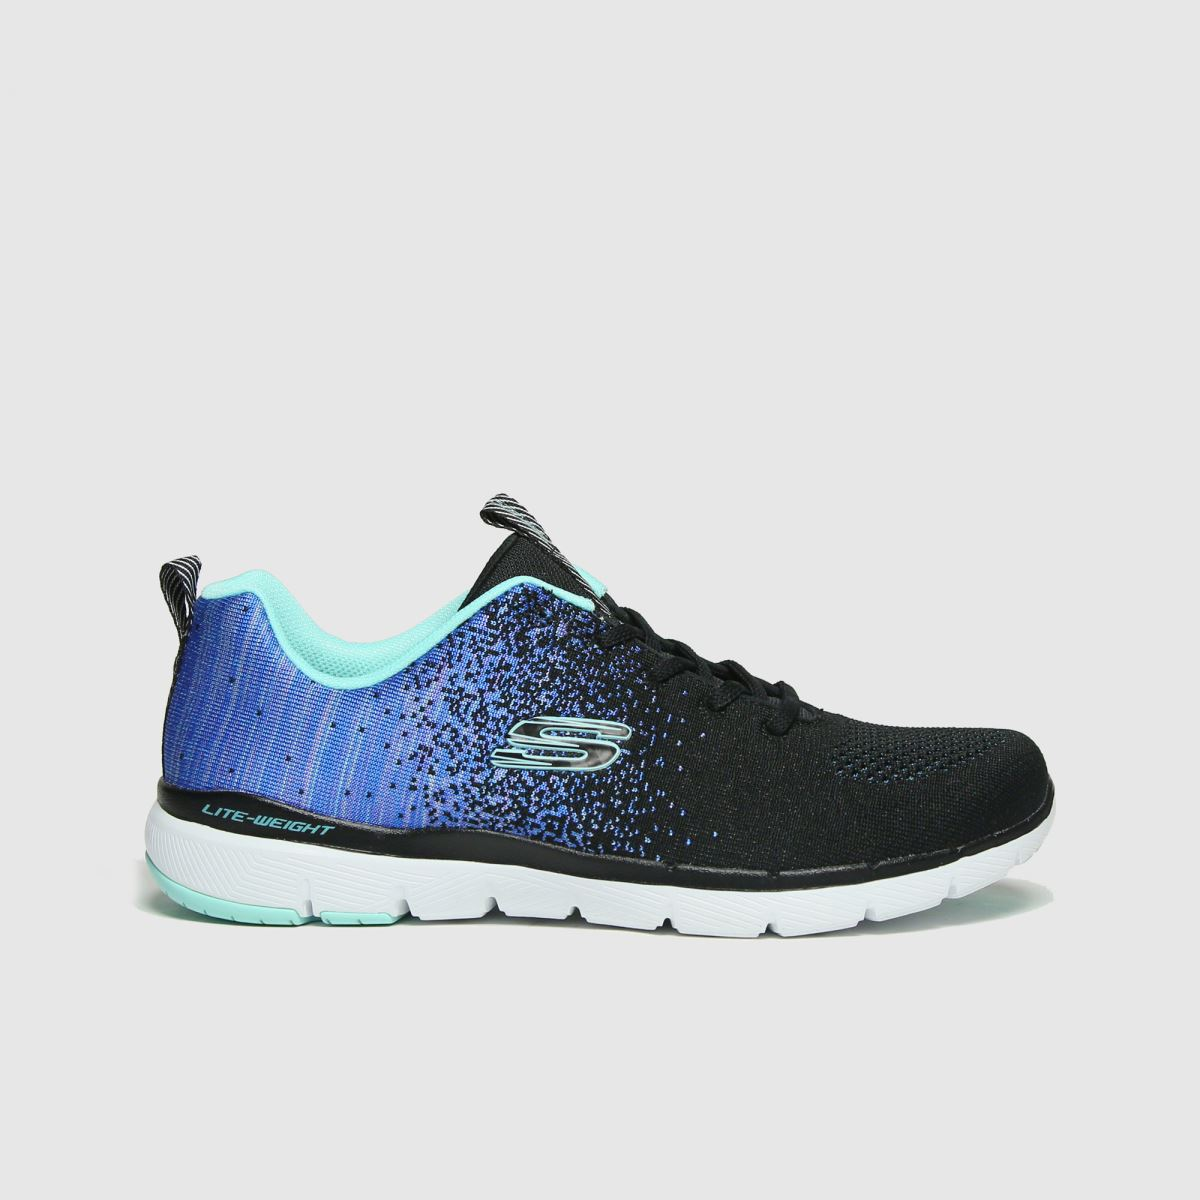 Skechers Black And Blue Flex Appeal 3.0 Trainers